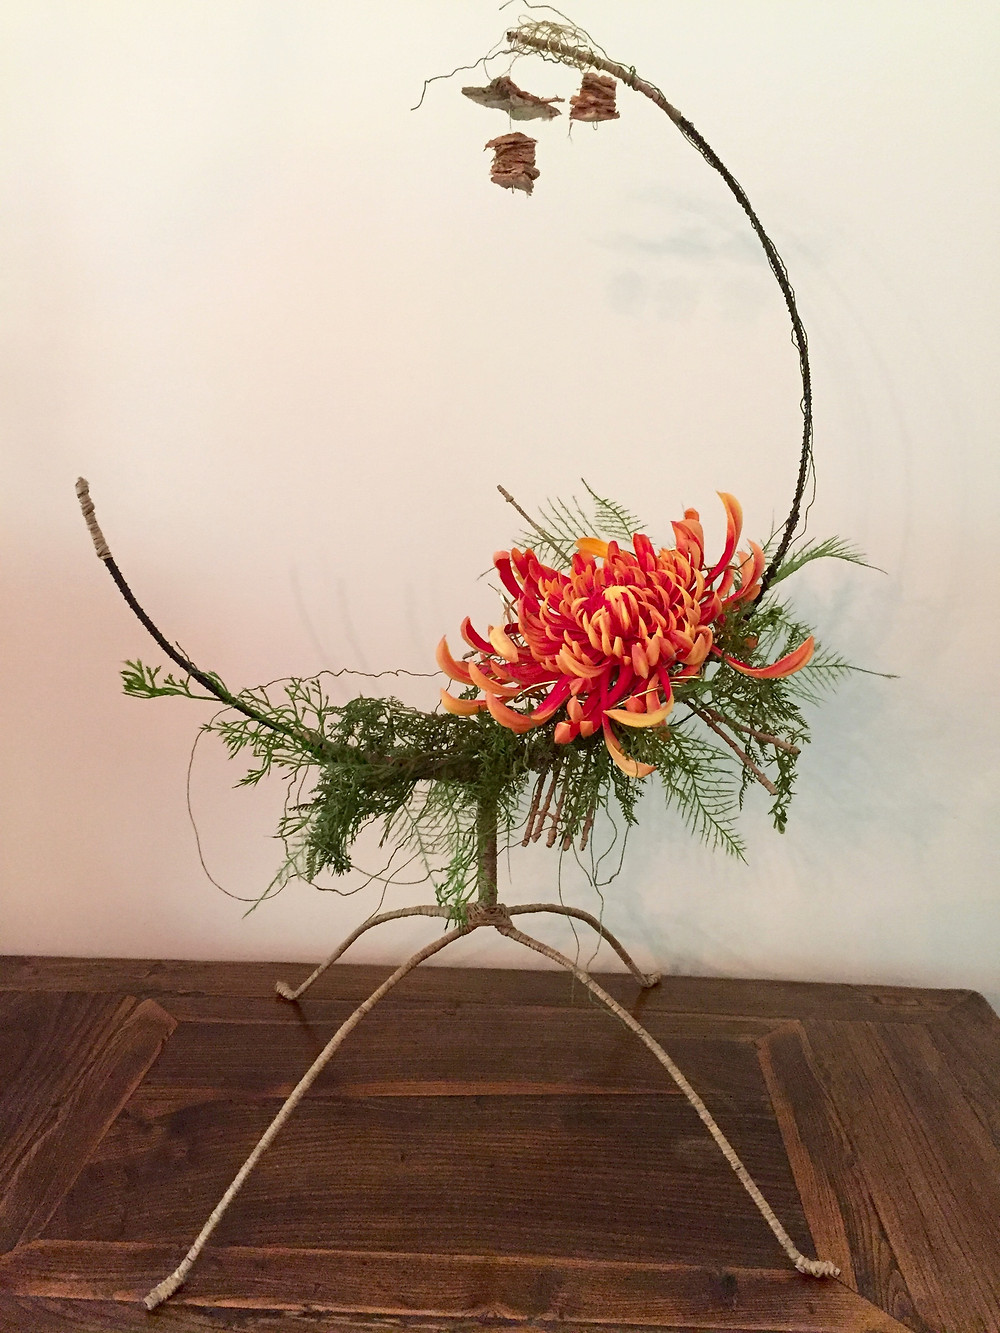 Eco friendly corporate floral design with purpose